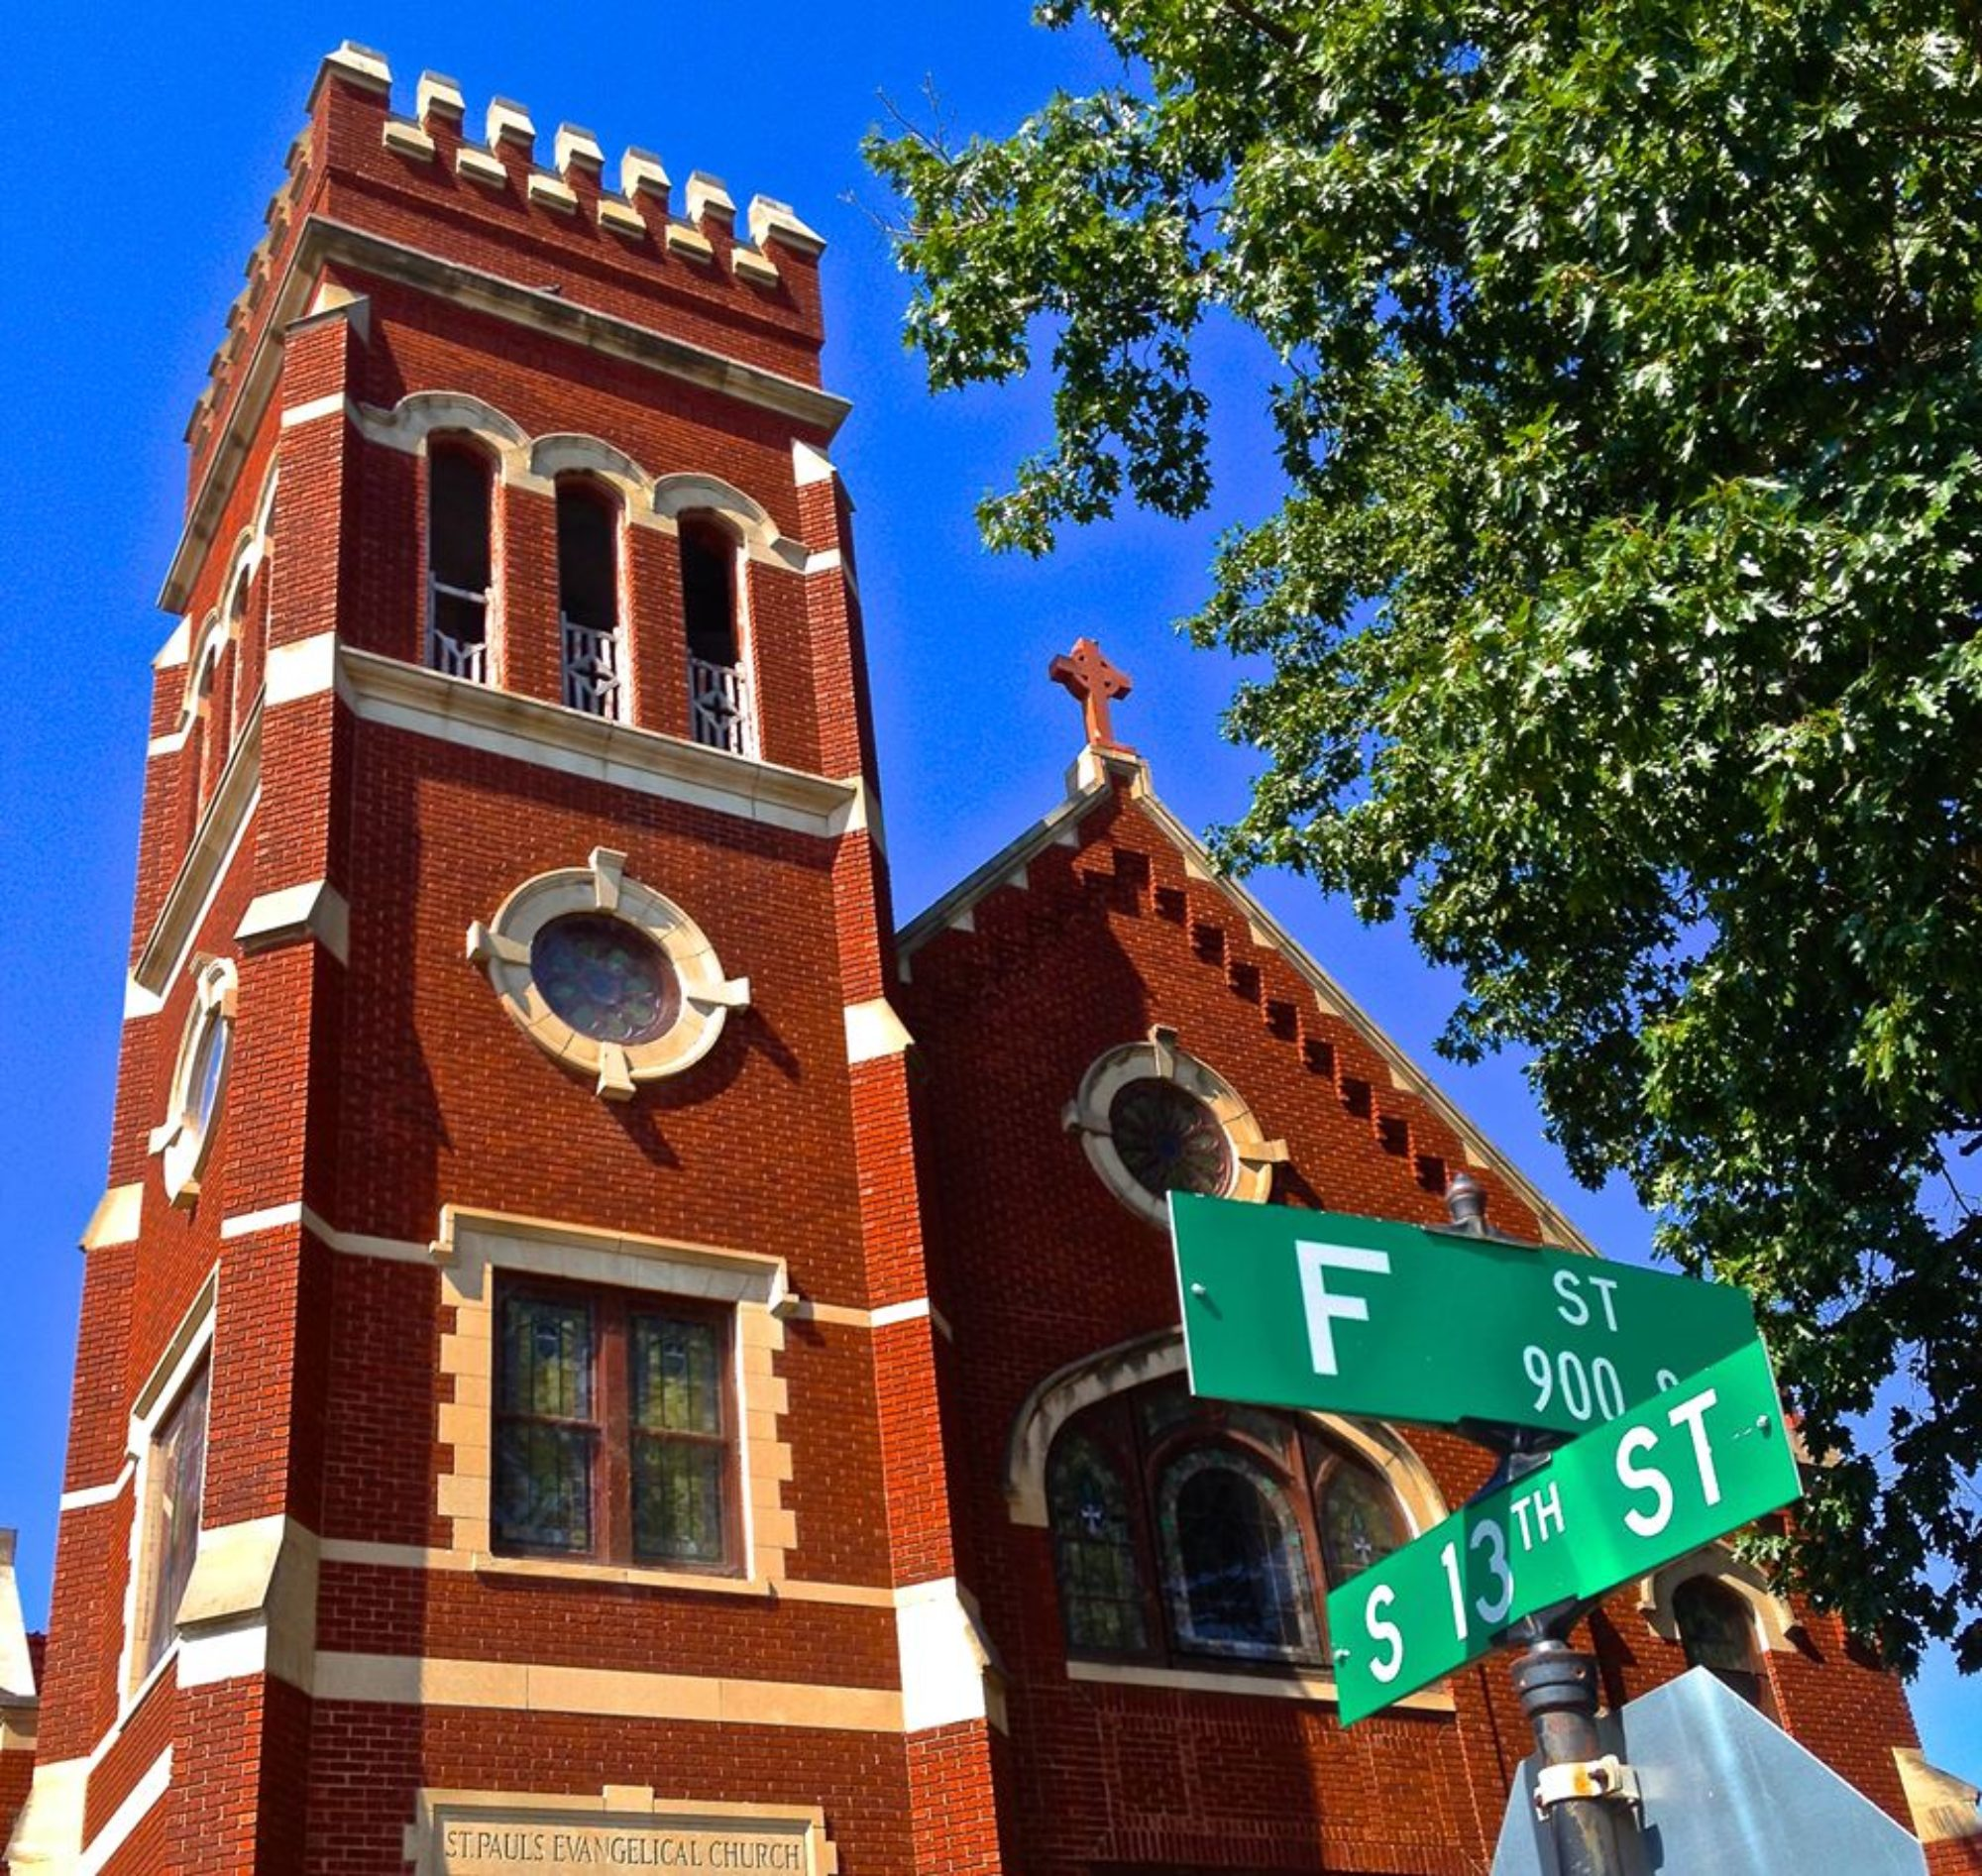 F Street Neighborhood Church